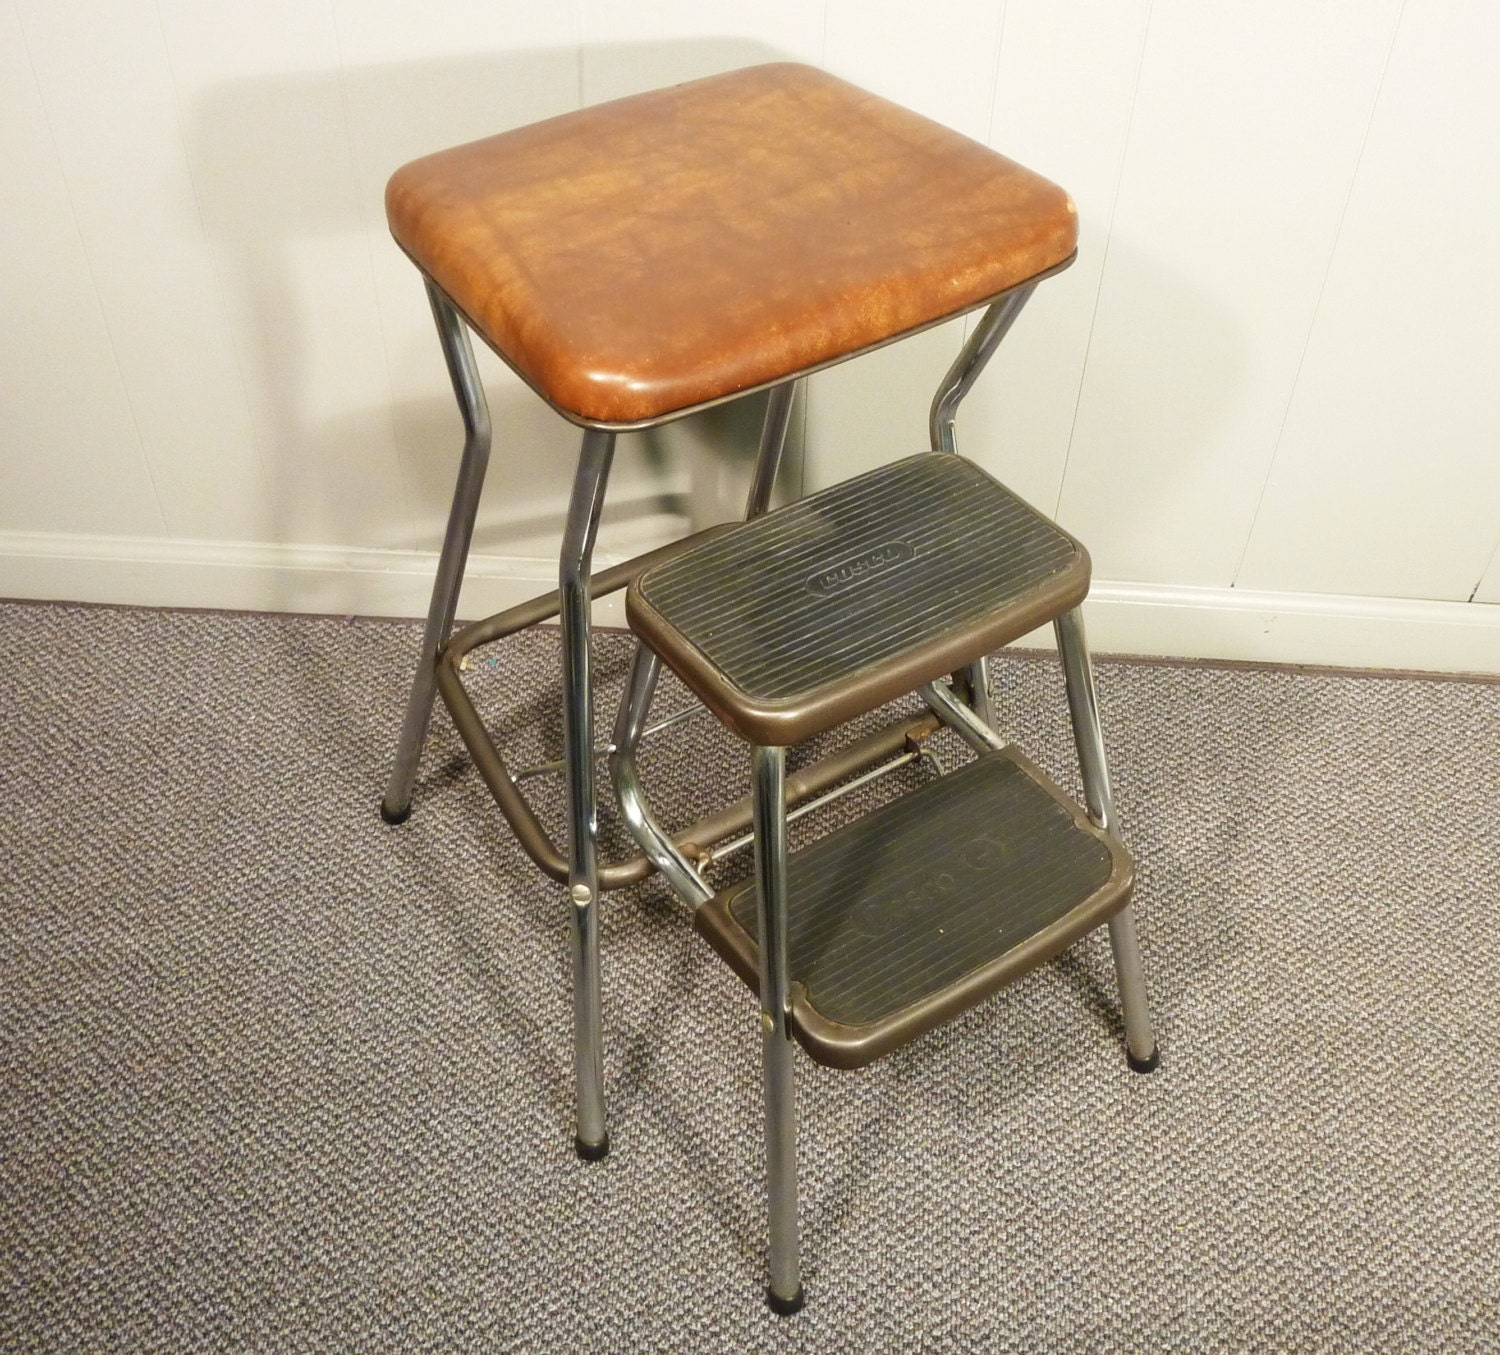 Retro 50s Vintage Step Stool Kitchen Chair Cosco